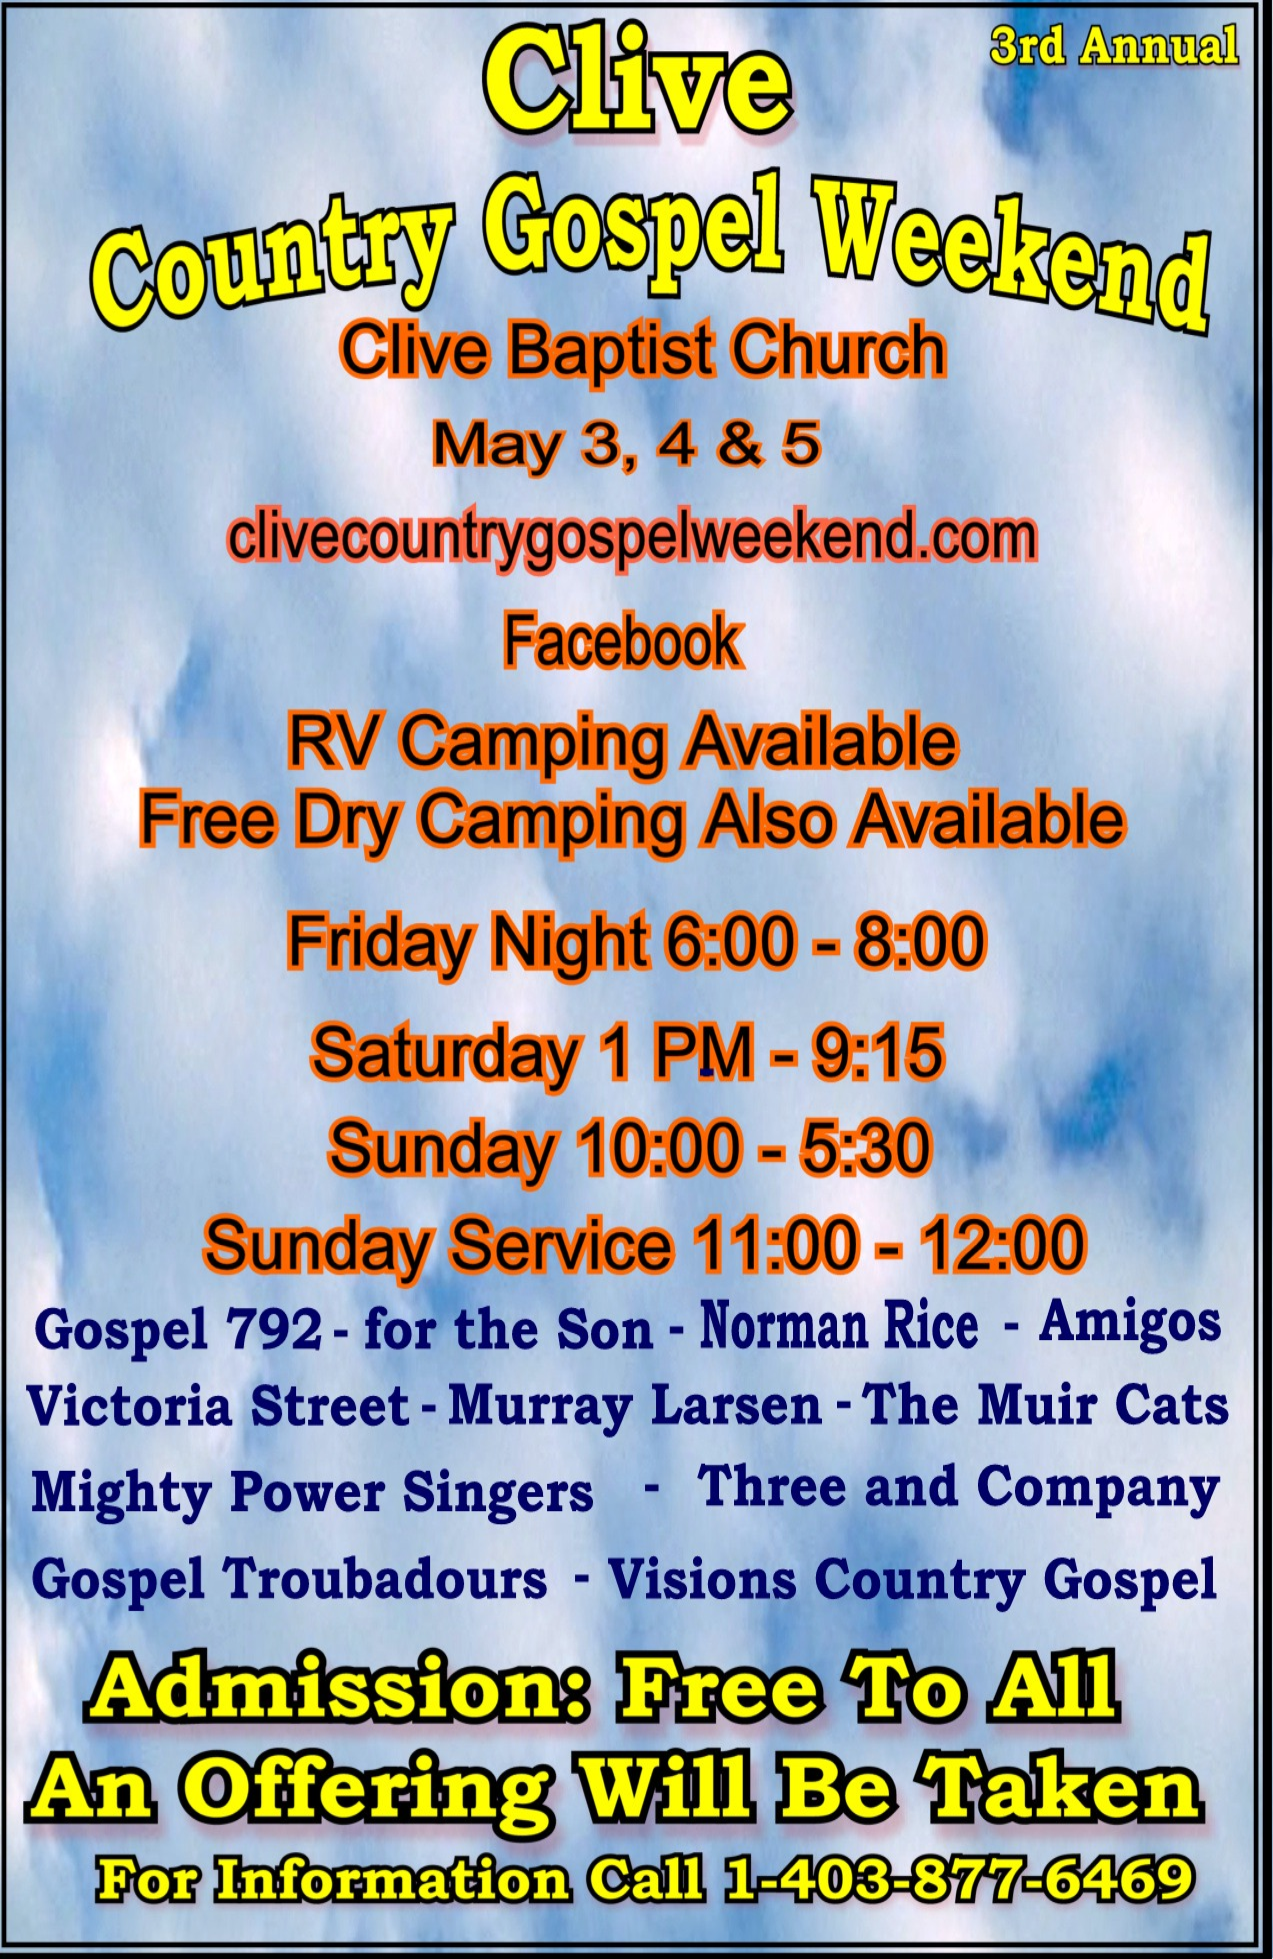 Clive Country Gospel Weekend